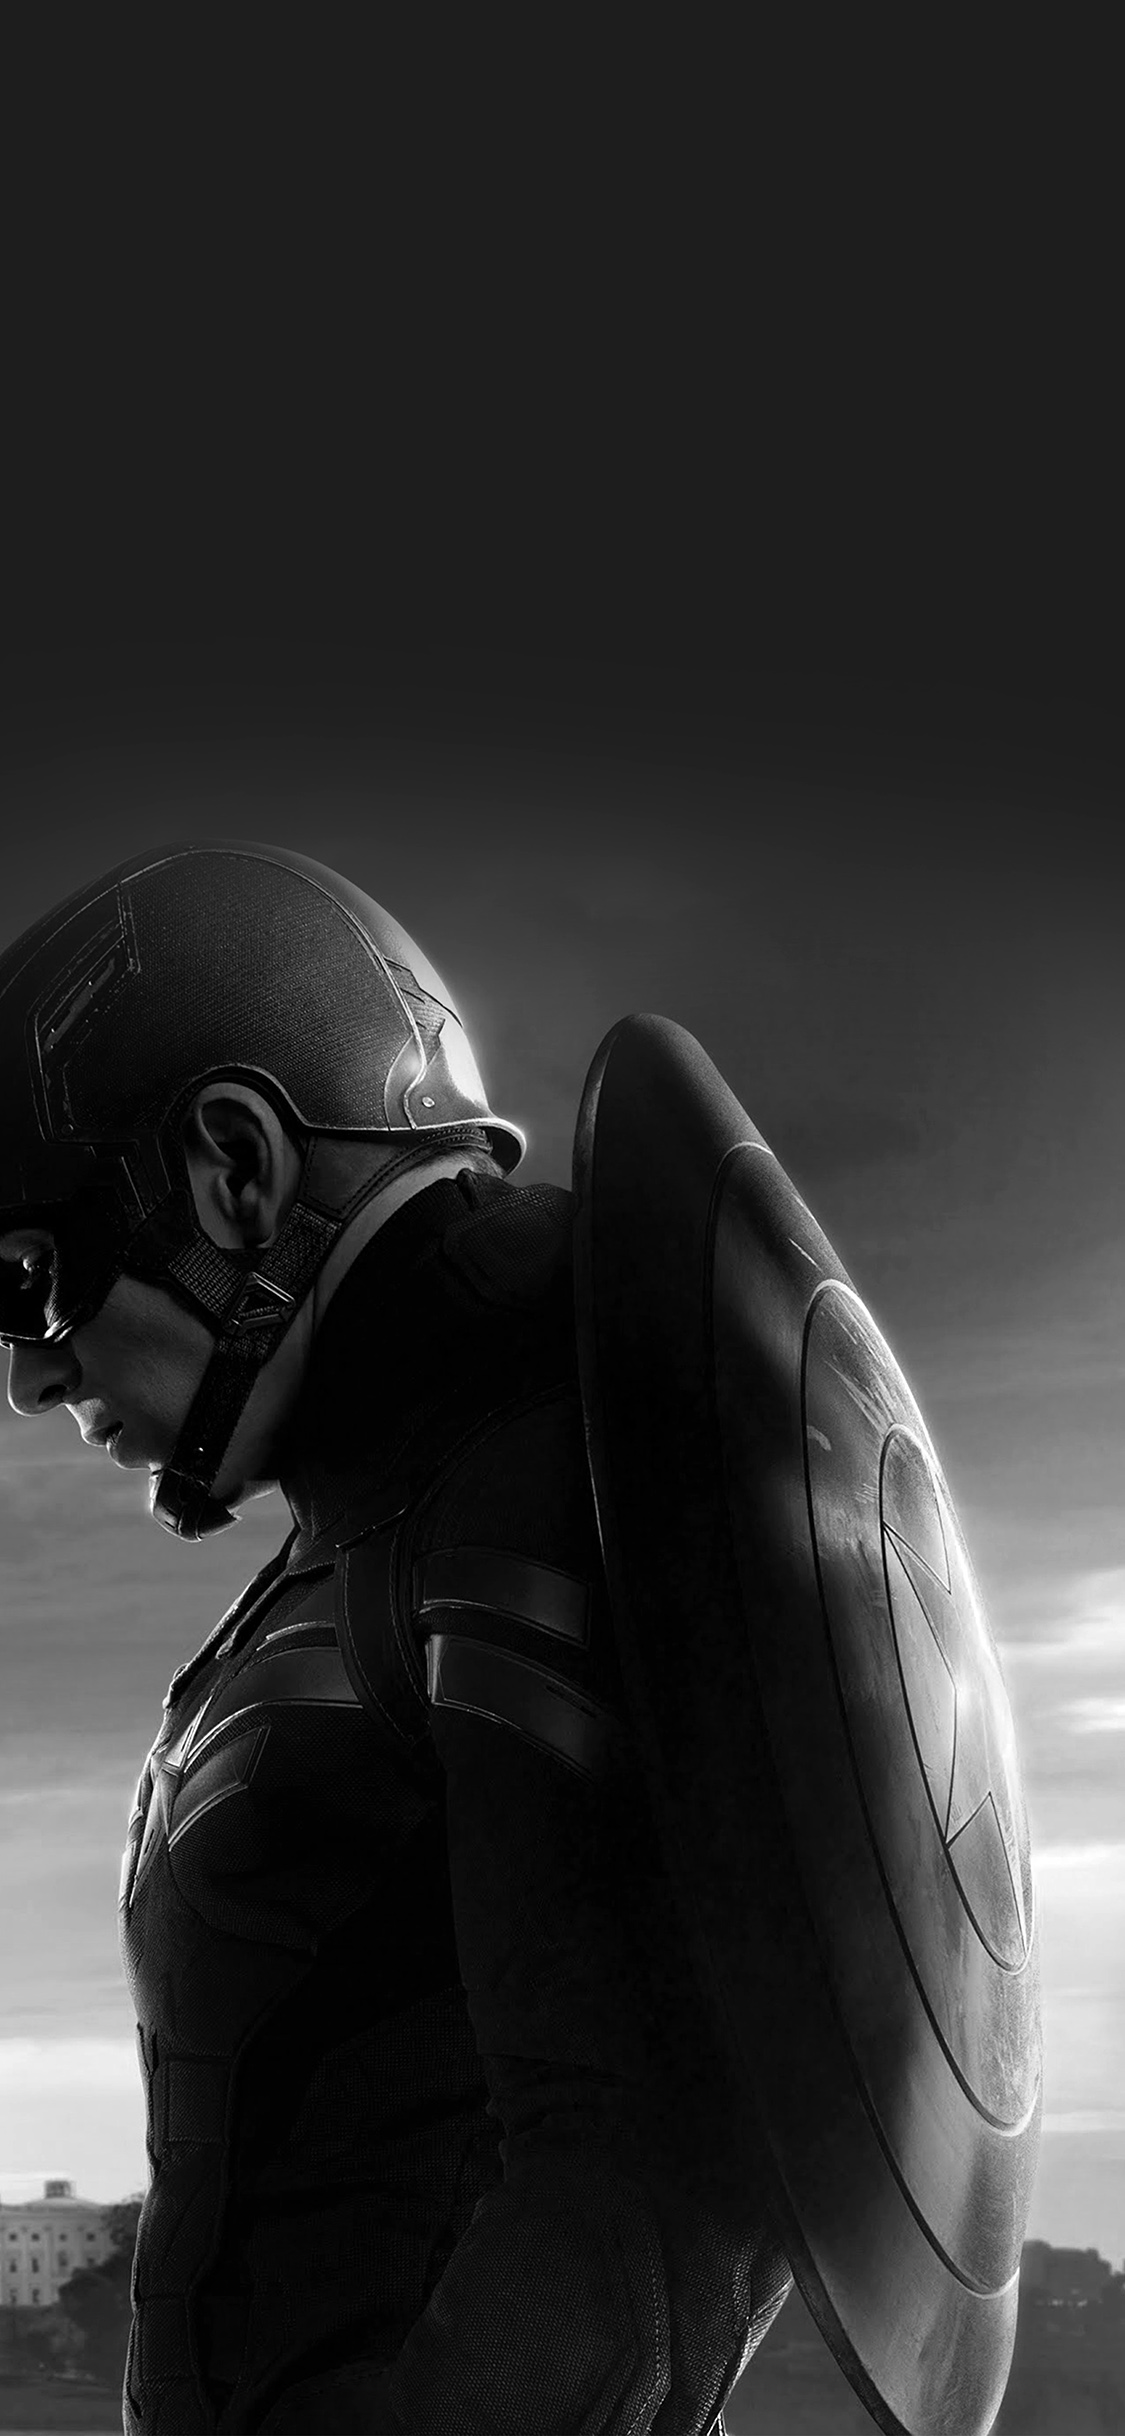 Iphone 6 Hd Wallpaper Black And White An85 Captain America Sad Hero Film Marvel Dark Bw Wallpaper